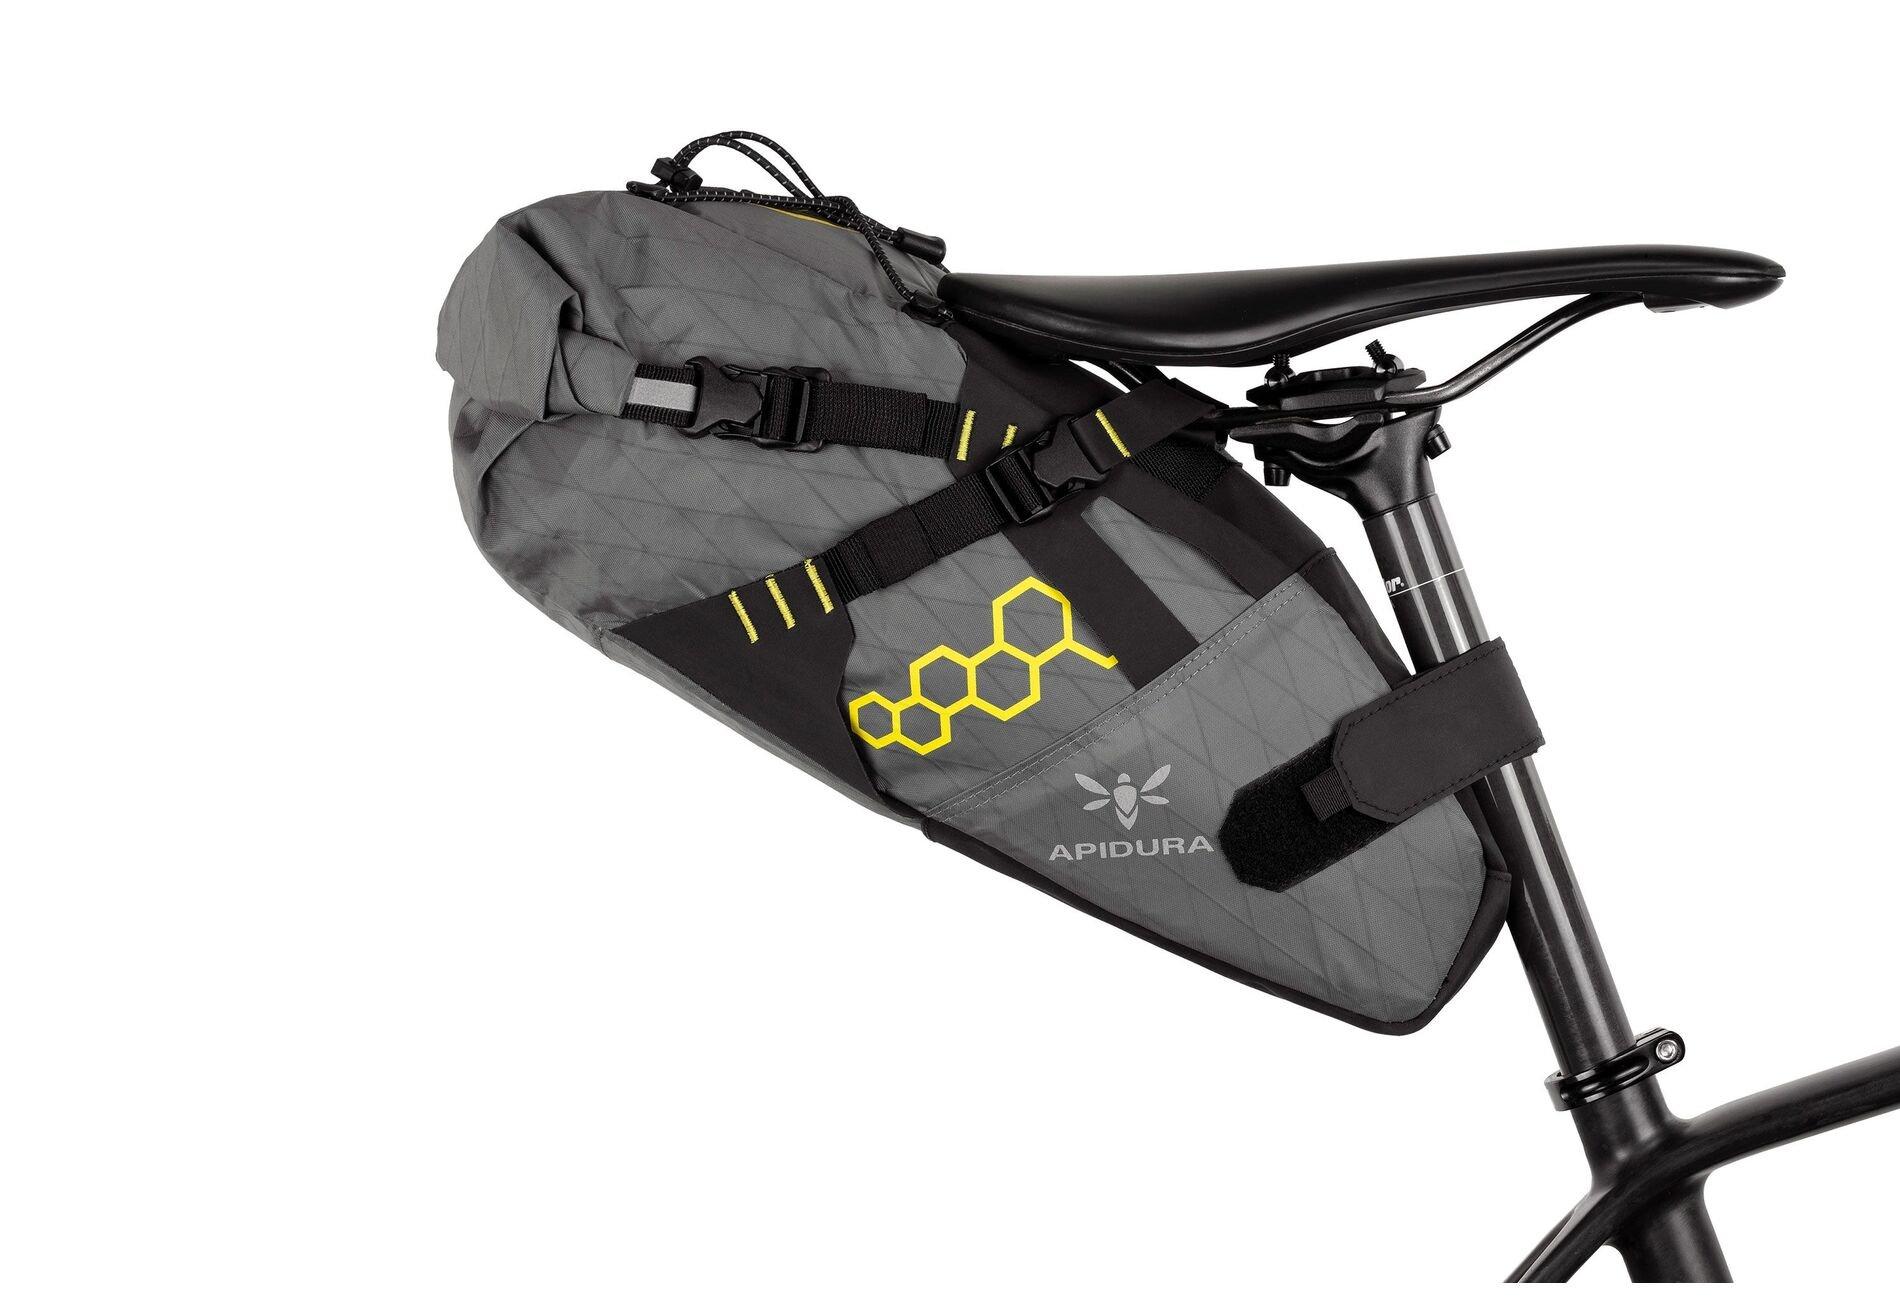 Apidura Backcountry saddle pack (nuoma)